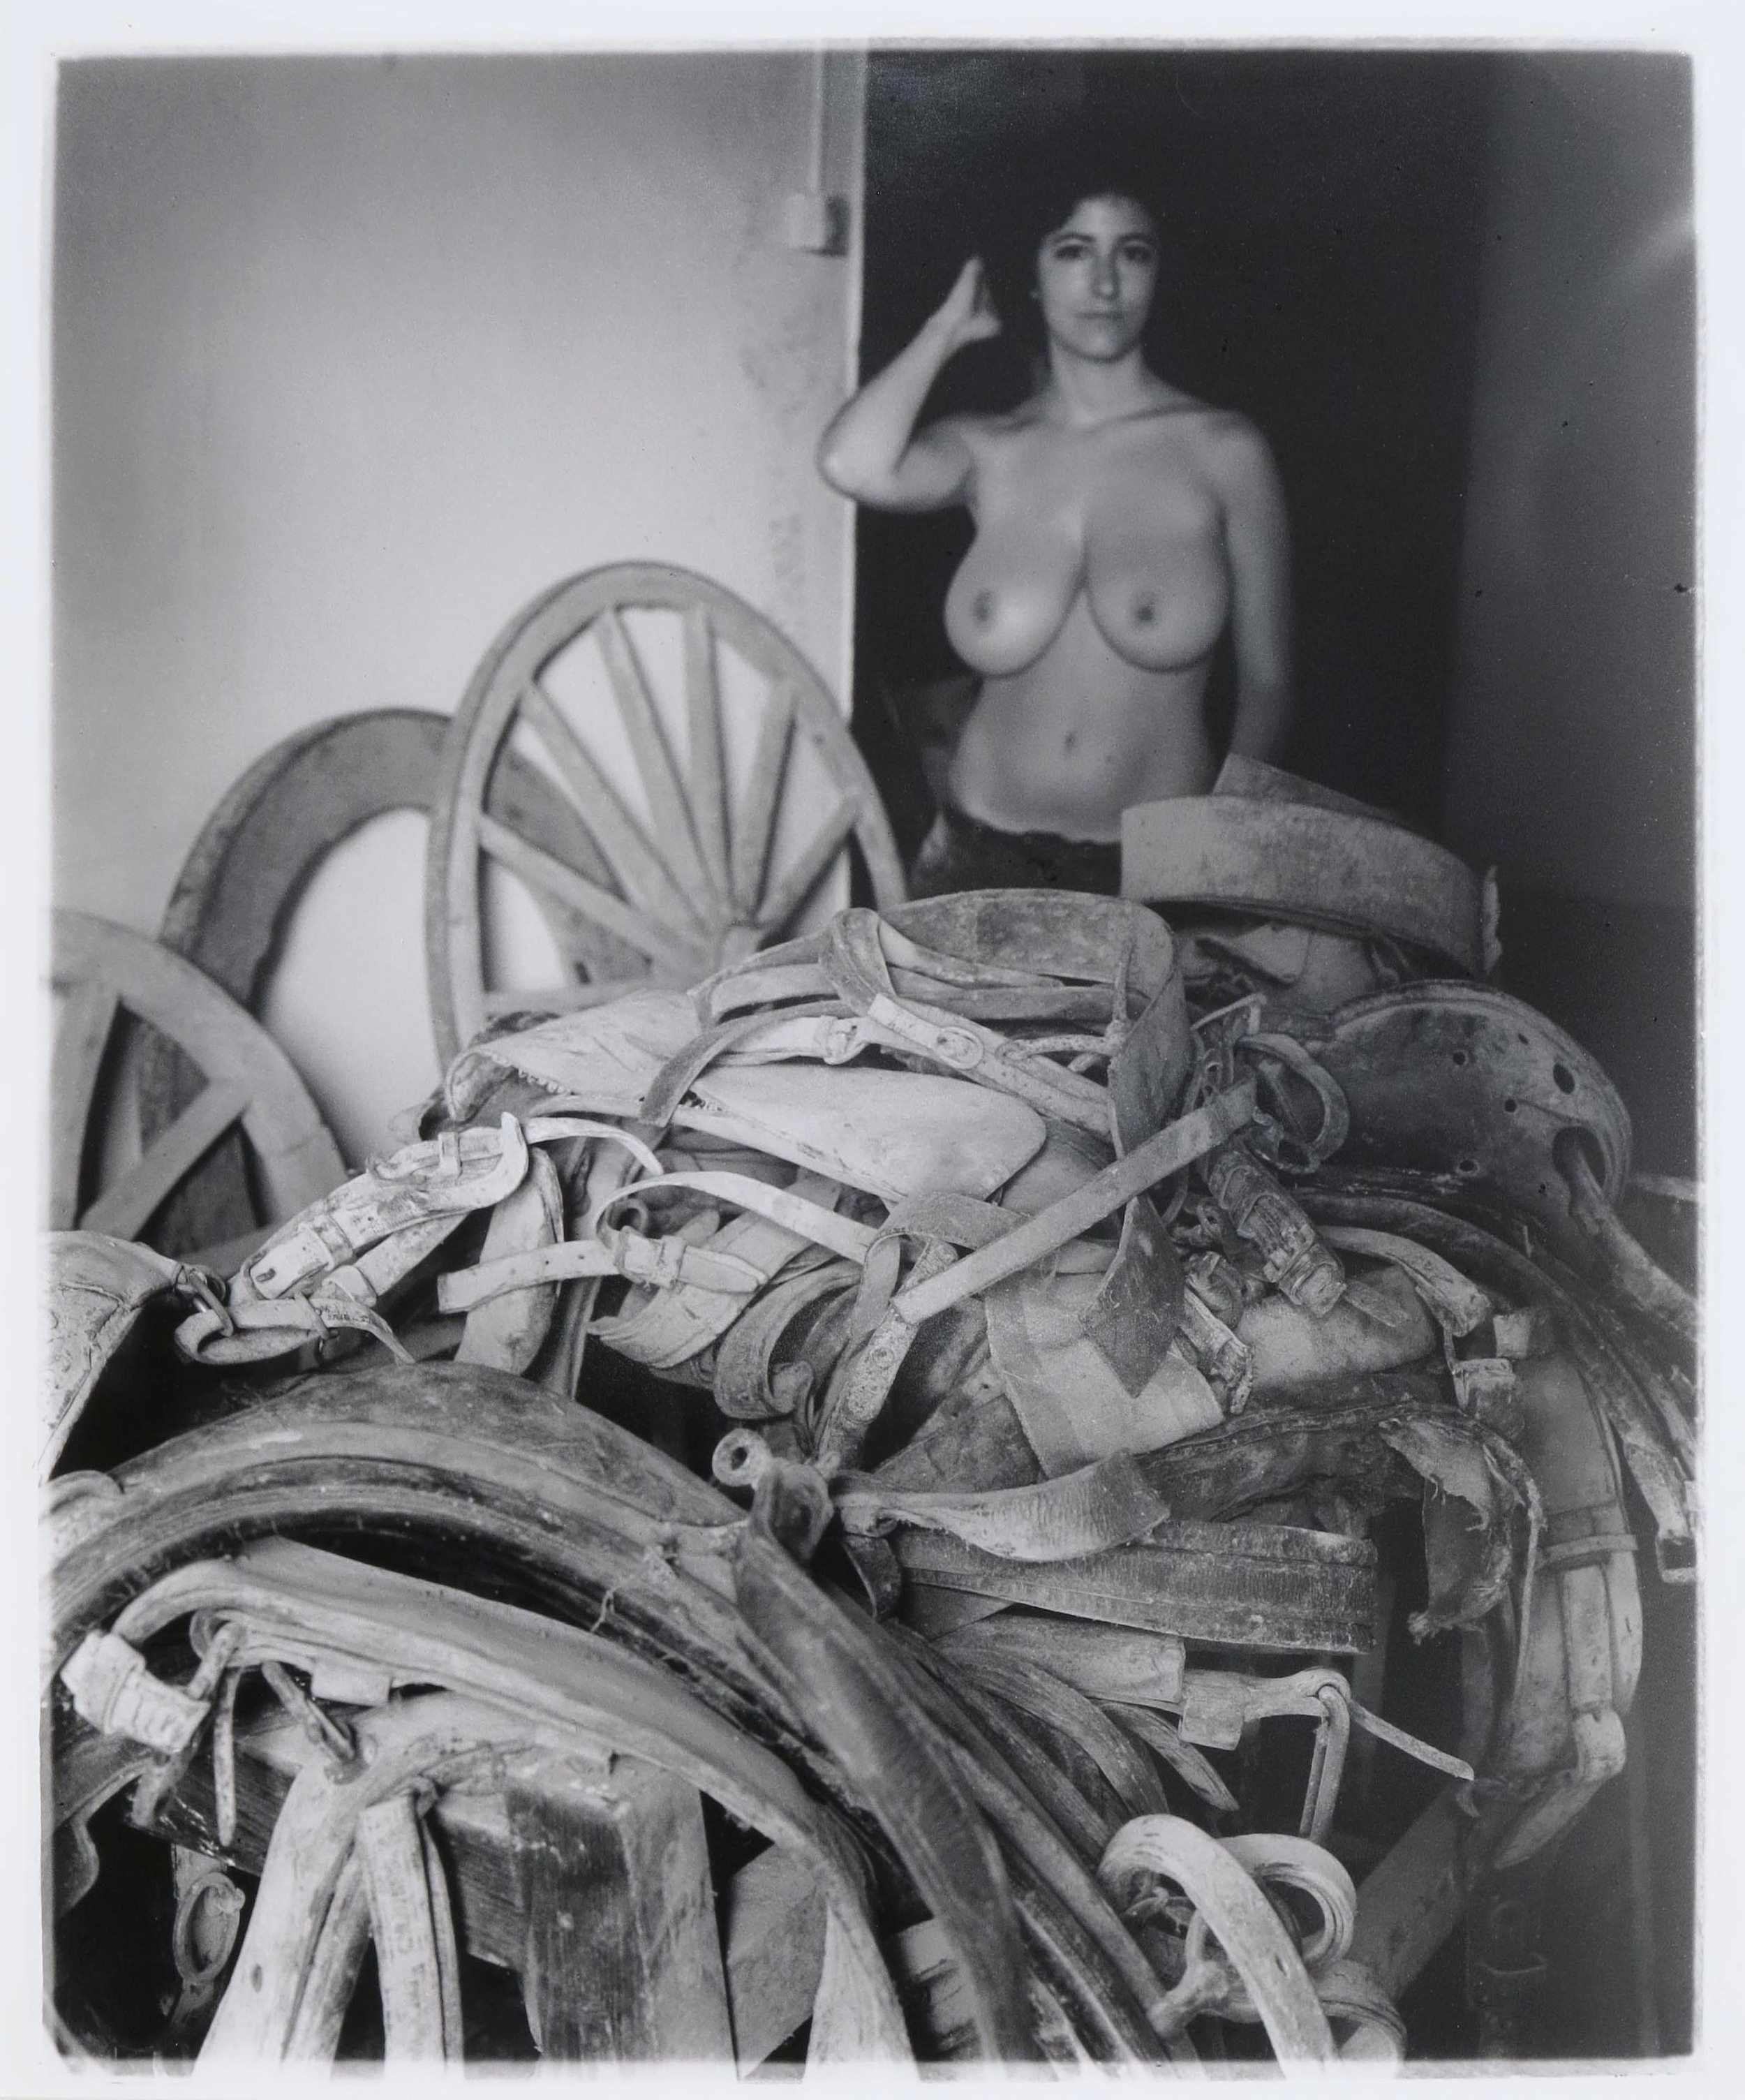 The Muse of Harnesses  2014  gelatin silver print  20 x 24 inches